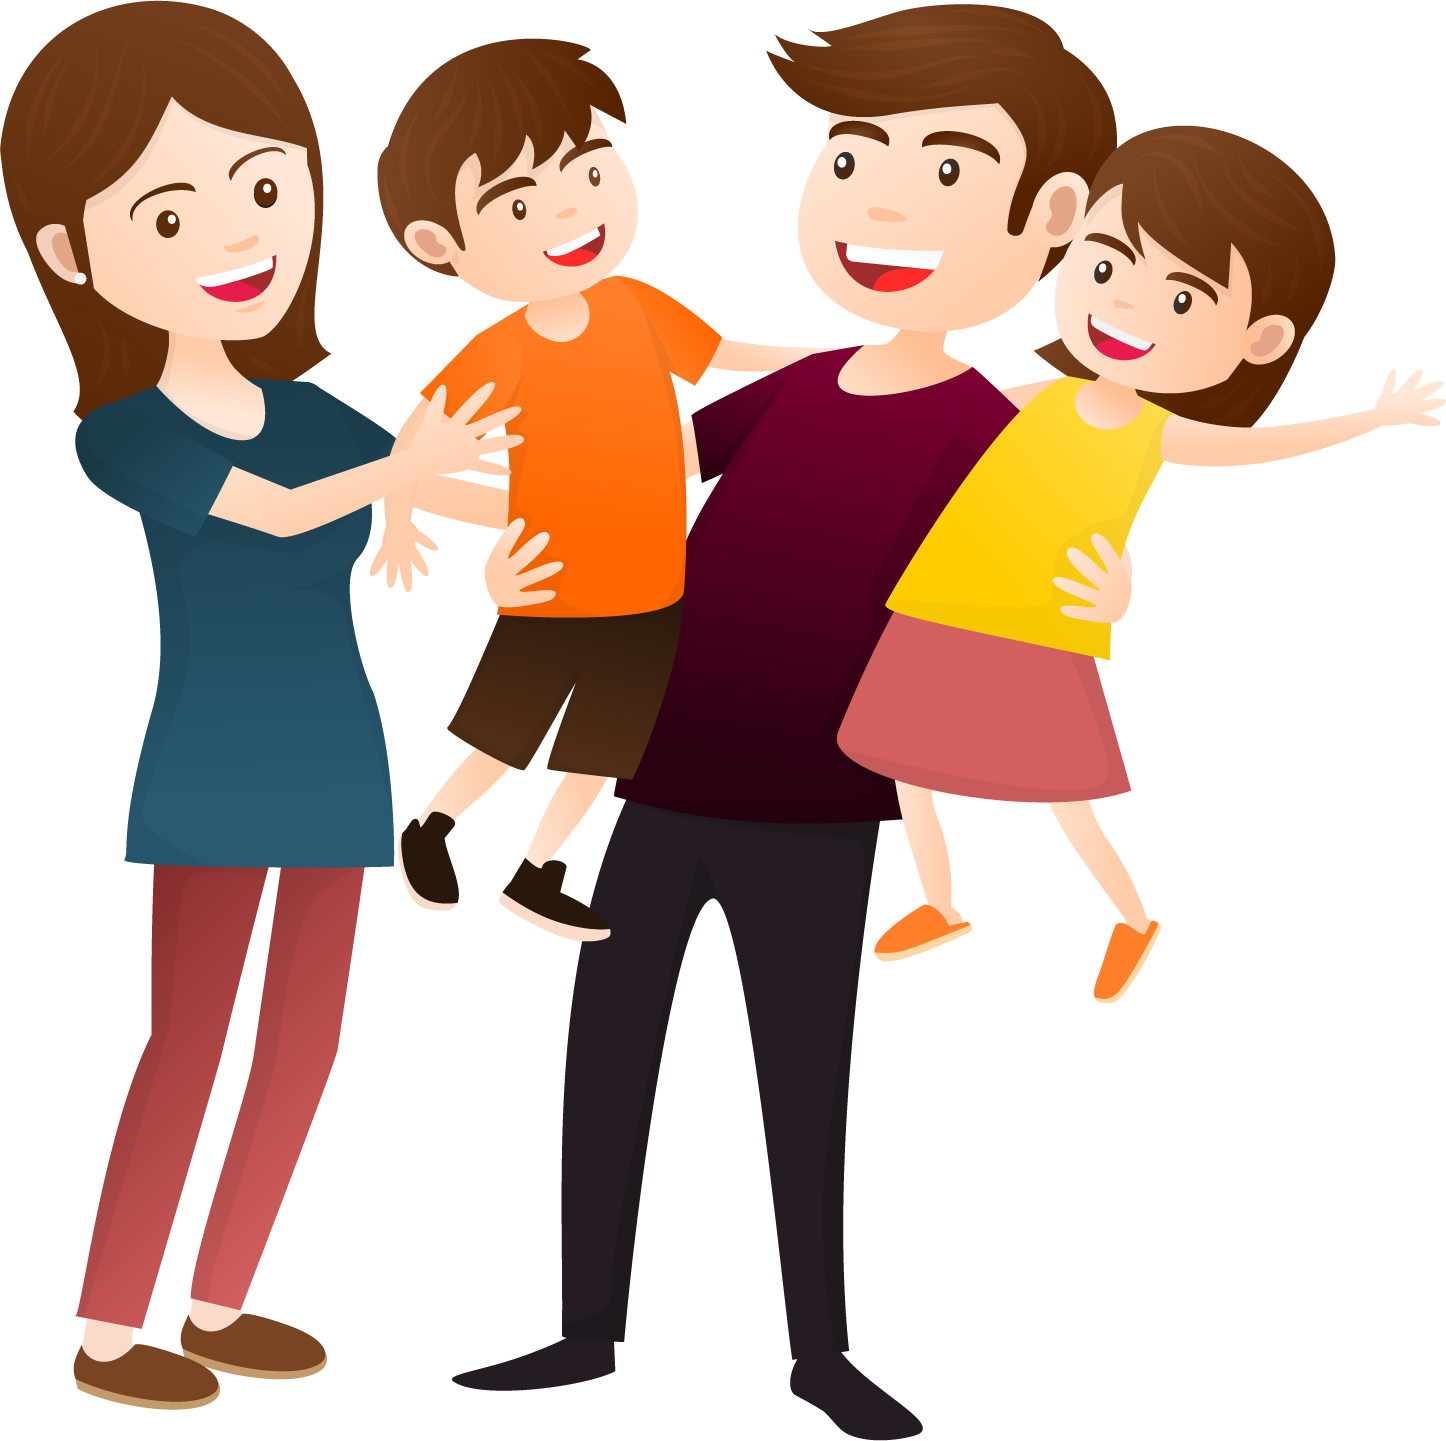 Family computer clipart image free download Family clipart computer, Family computer Transparent FREE for ... image free download